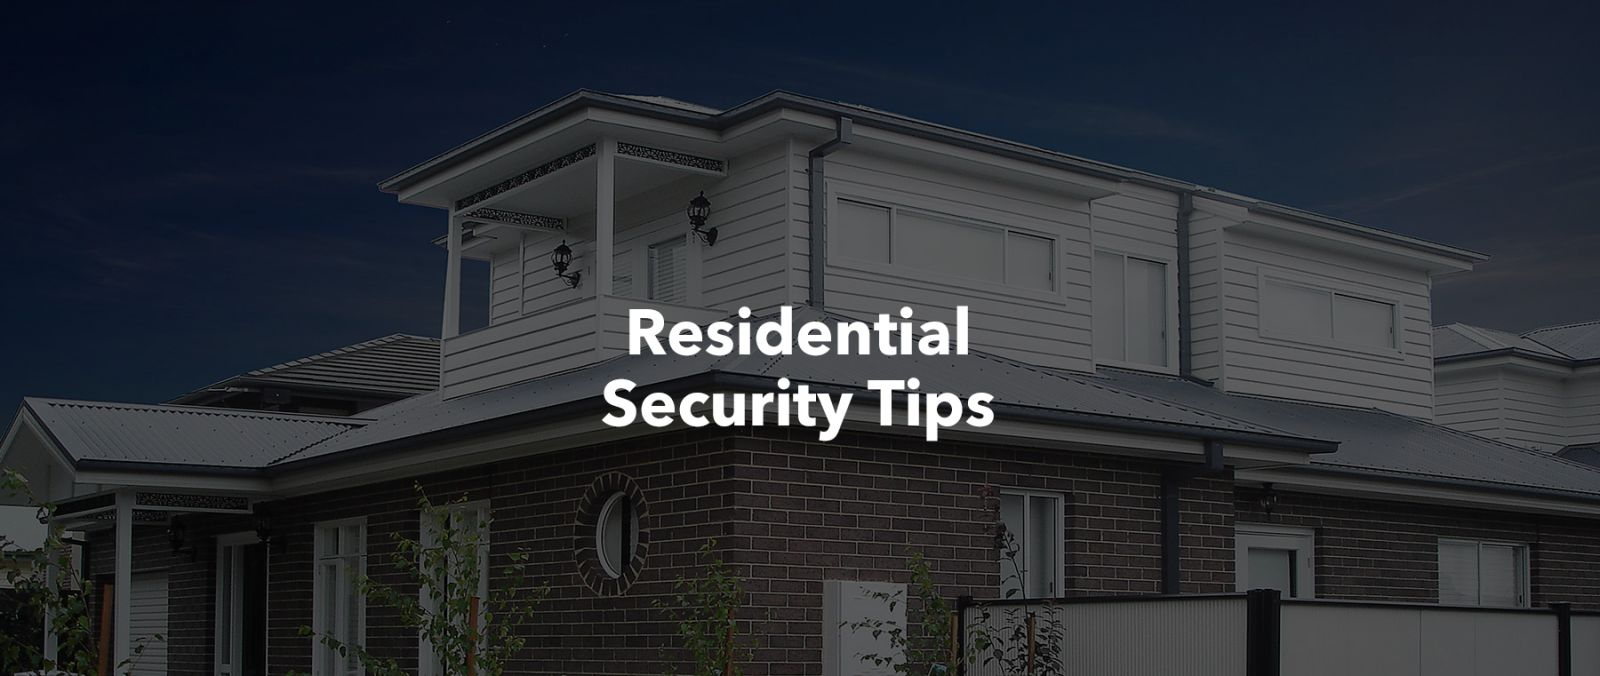 Residential Security Tips